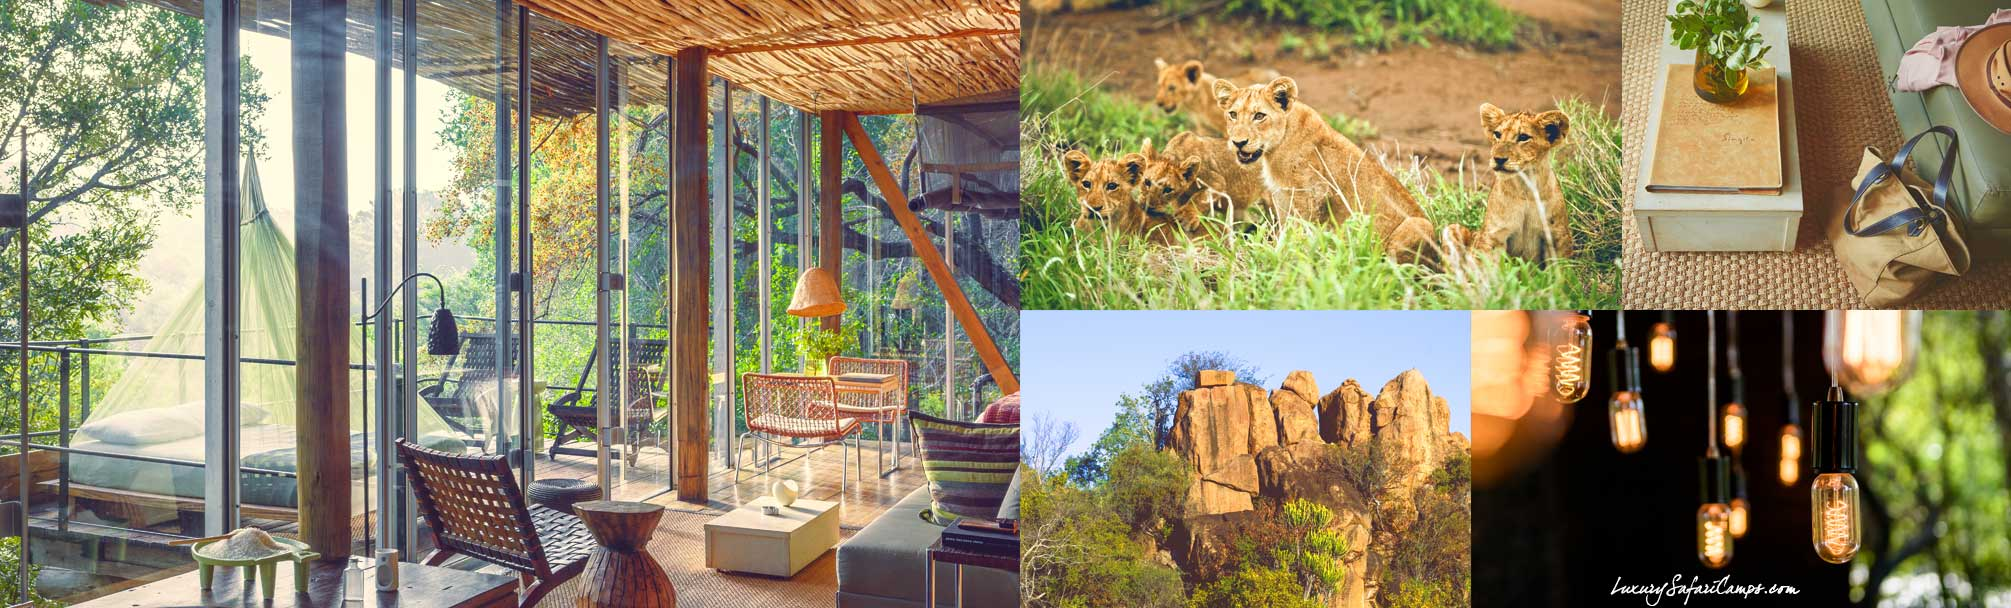 Luxury Safari with Guided Safaris® LuxurySafariCamps.com